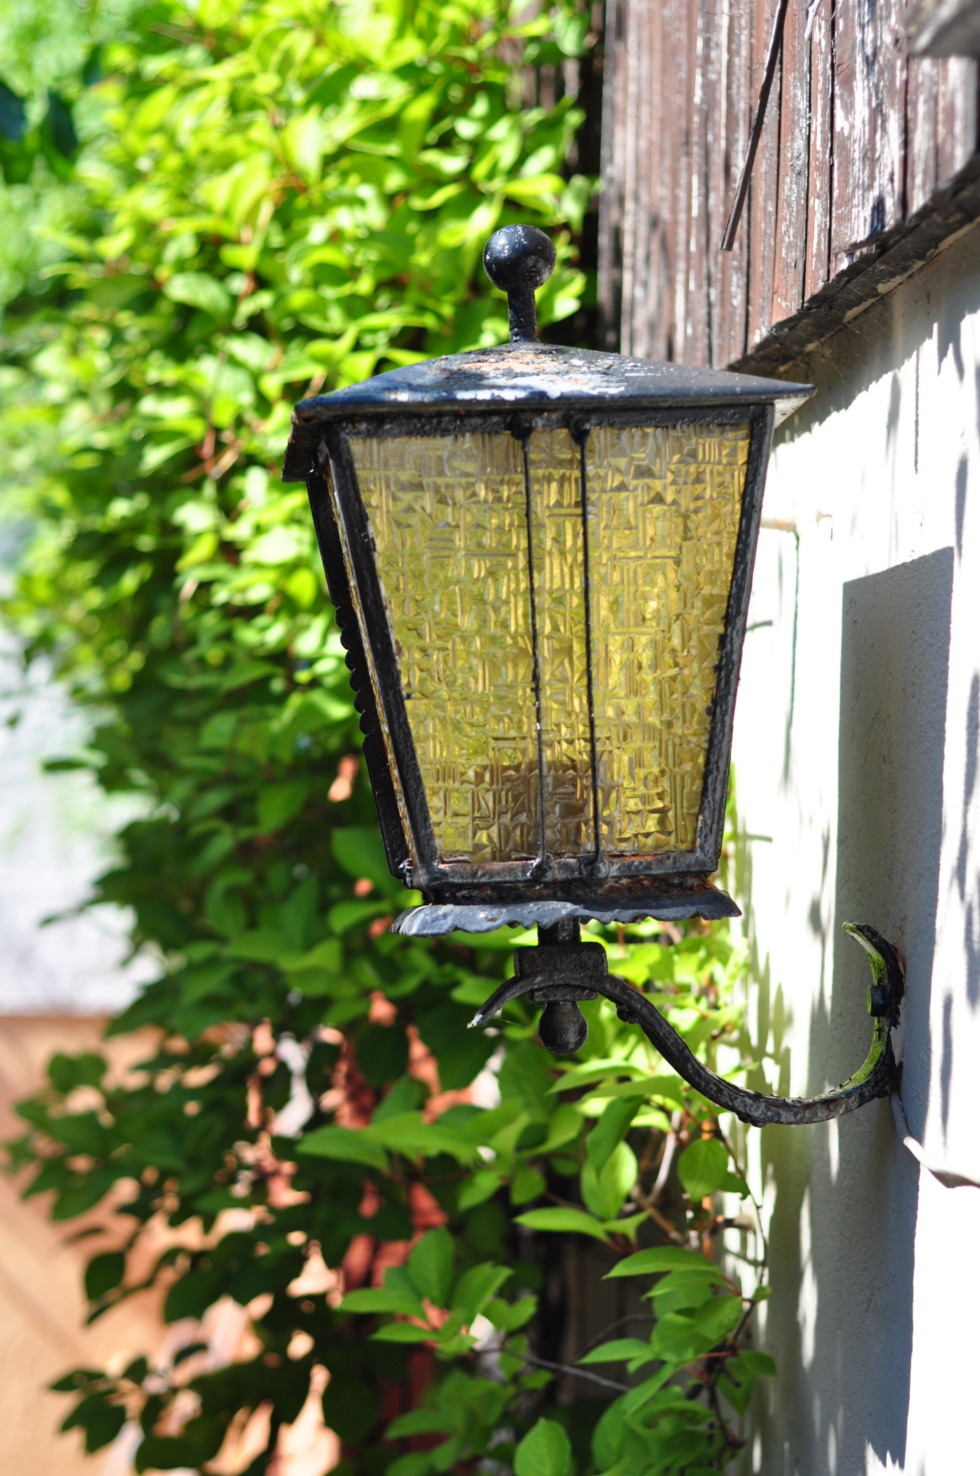 Old lantern with yellow glass